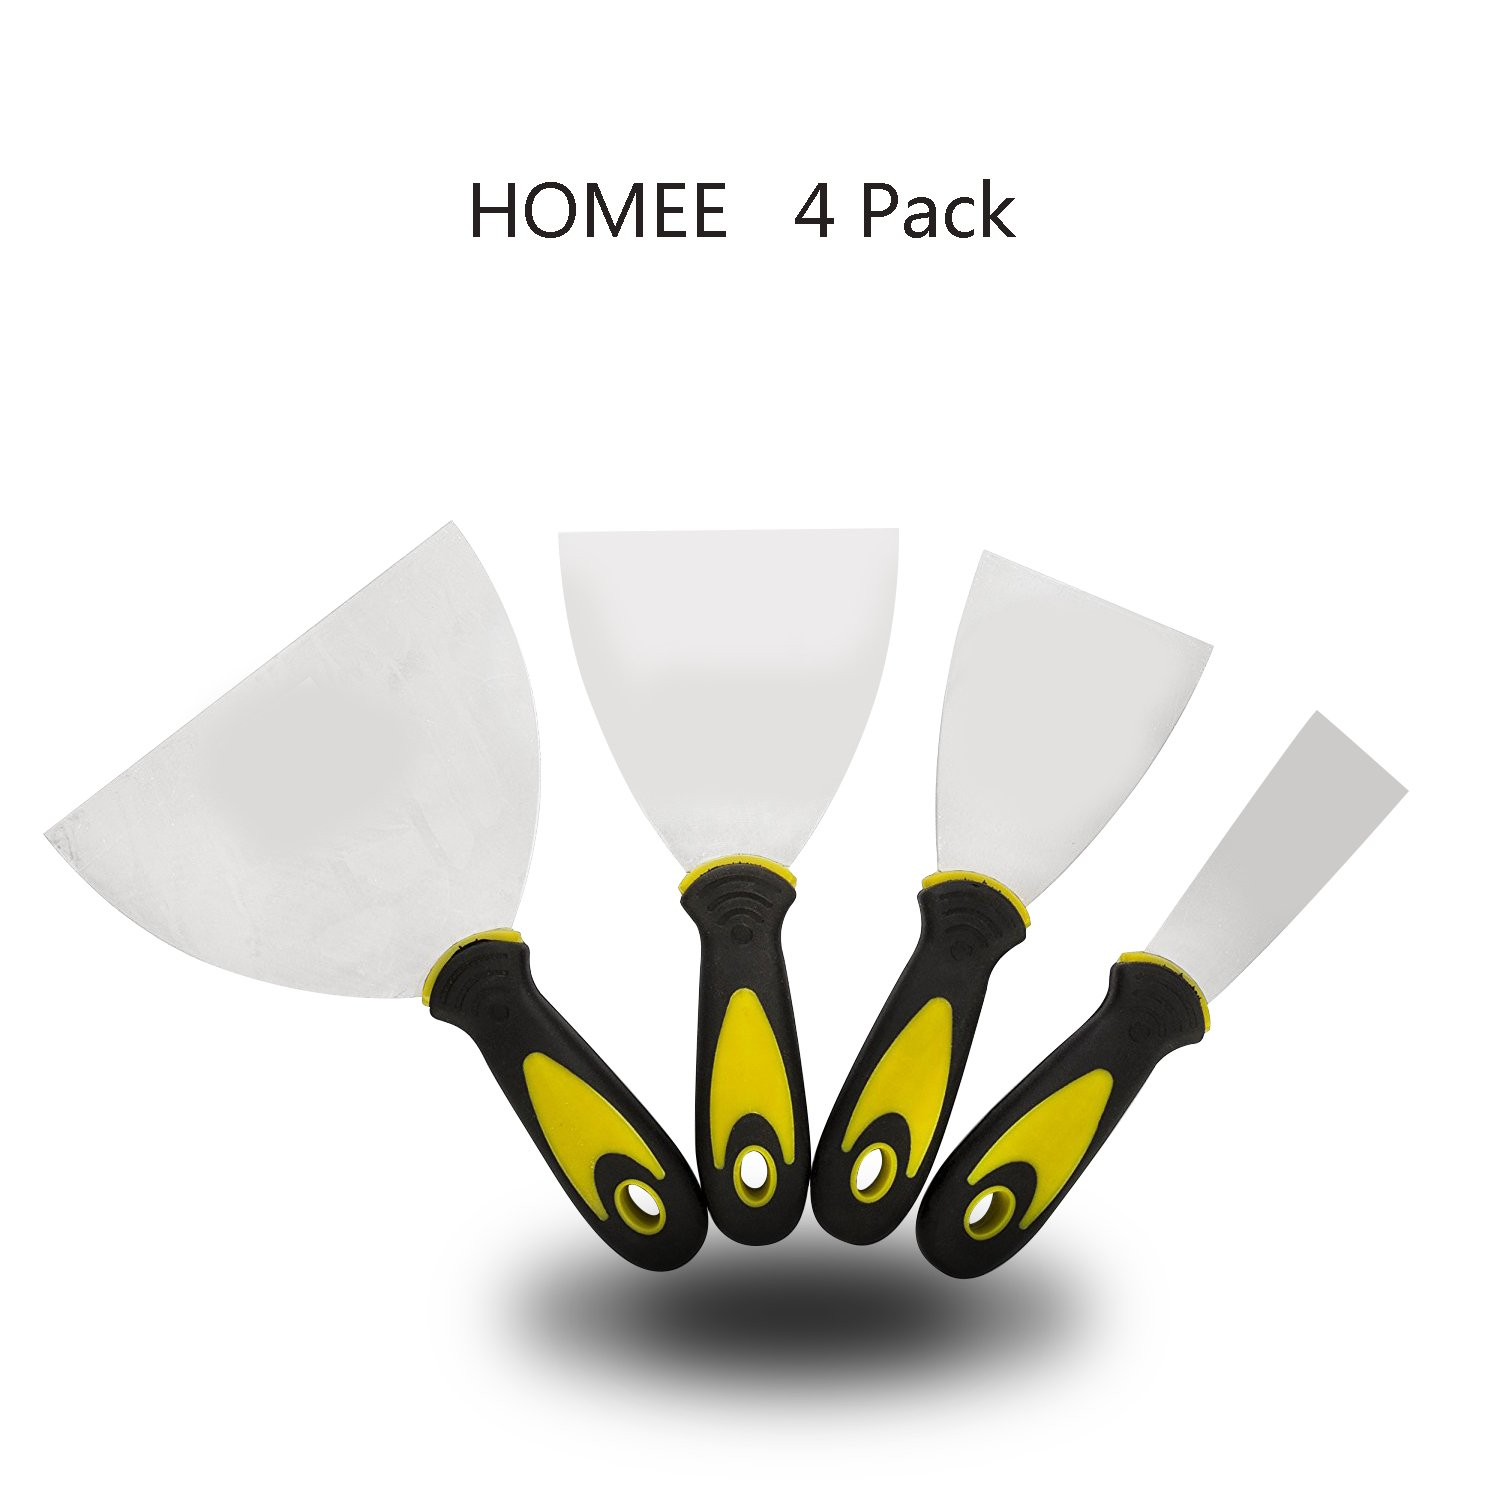 """4 pack Putty Knife set Drywall Taping Flexible Stainless Steel Taping Knives Carbon Steel Scraping Walls Floors Tile & More Size 2"""" 3"""" 4"""" 5"""""""